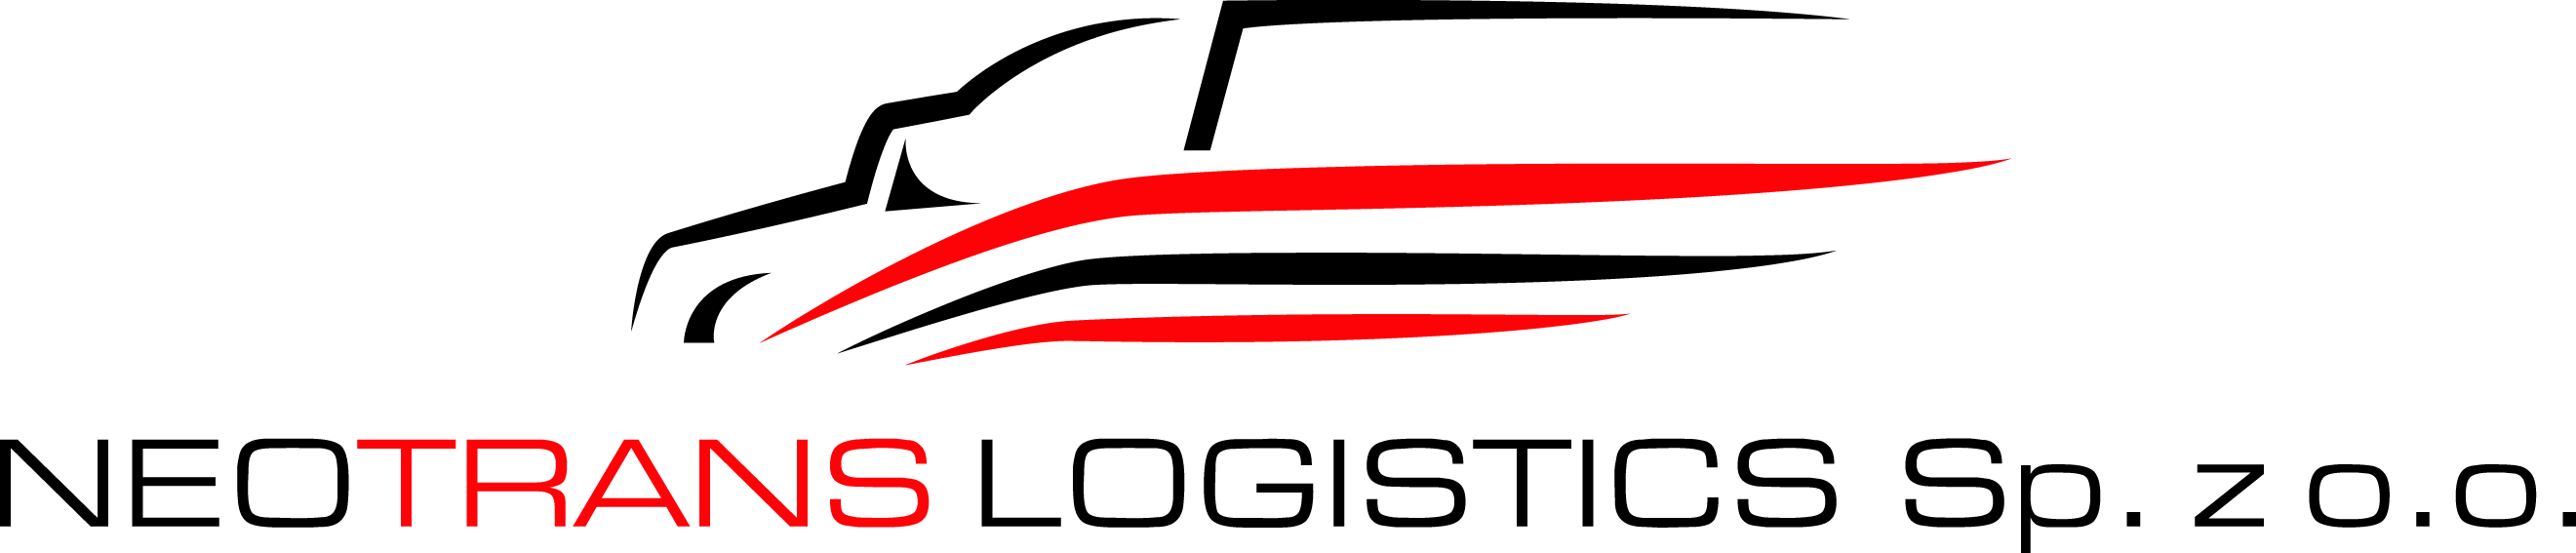 NeoTrans Logistics Sp. z o.o.